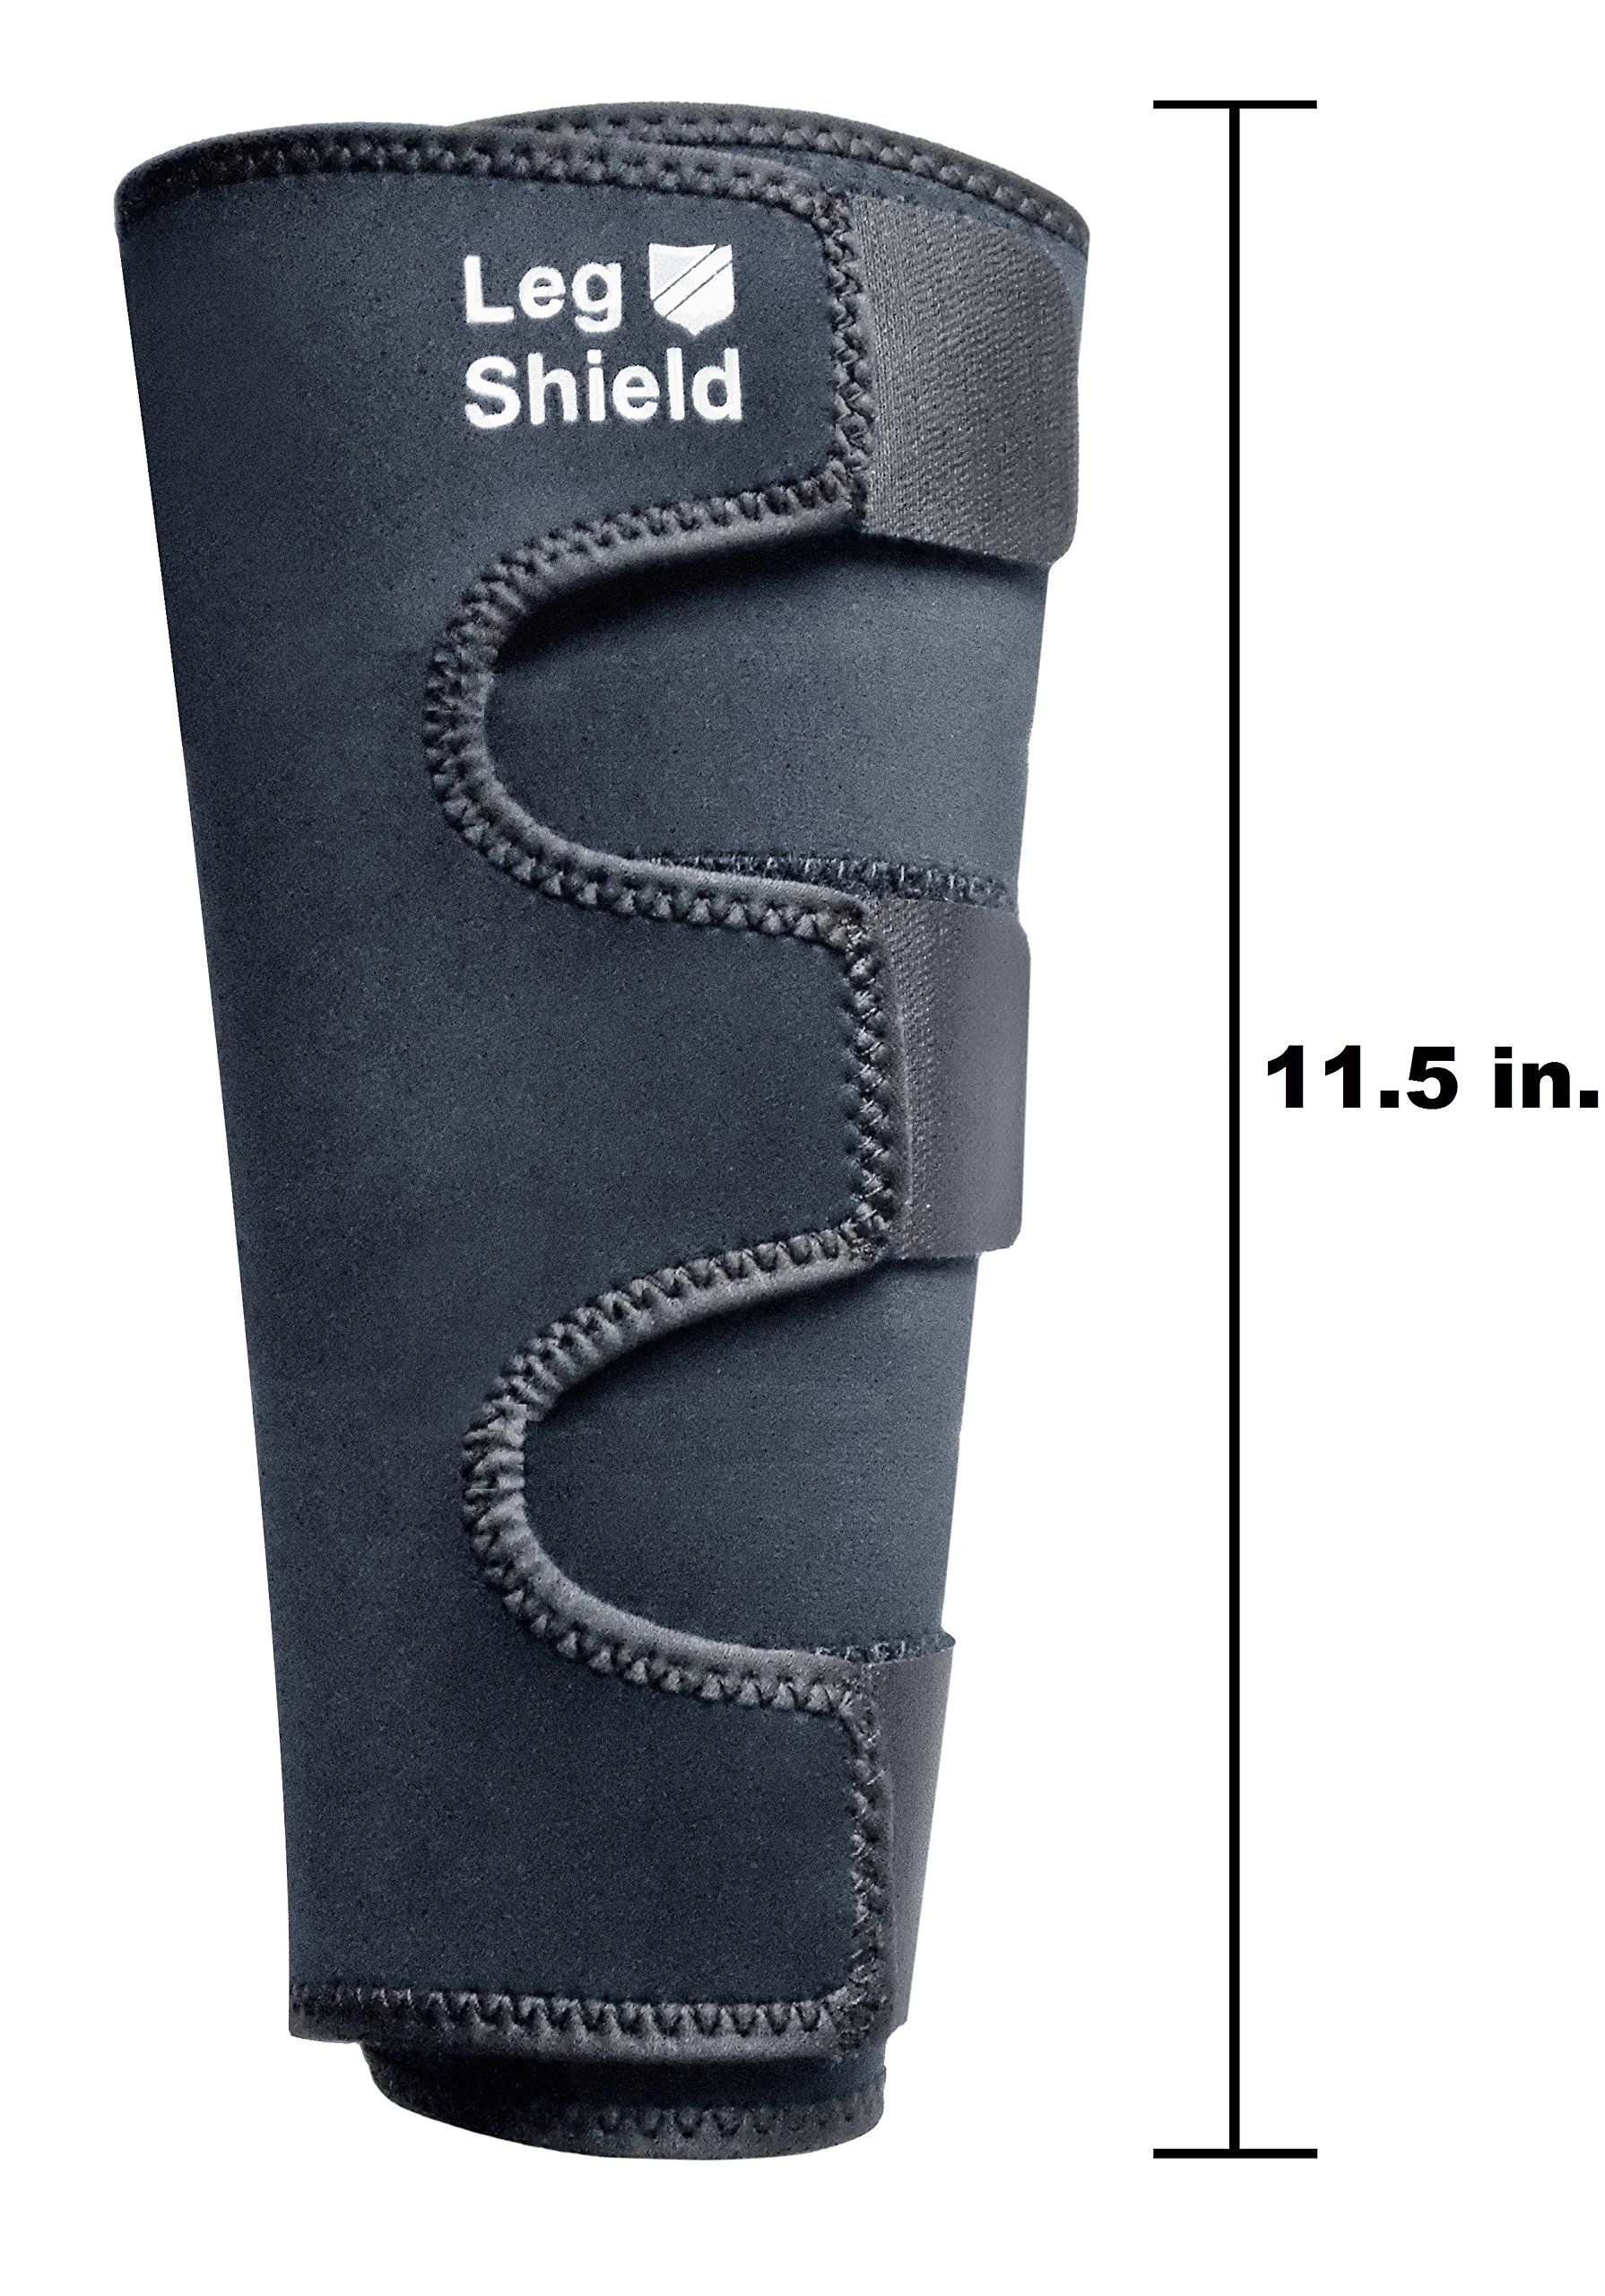 Neoprene Leg Gaiters (Pair) - Unique Hook and Loop Fastener Design for Easy On/Off - For Outdoors, Hunting, Hiking, Walking, and General Shin/Calf Protection - Windproof, Water Resistant, Snug Fit by Leg Shield (Image #4)